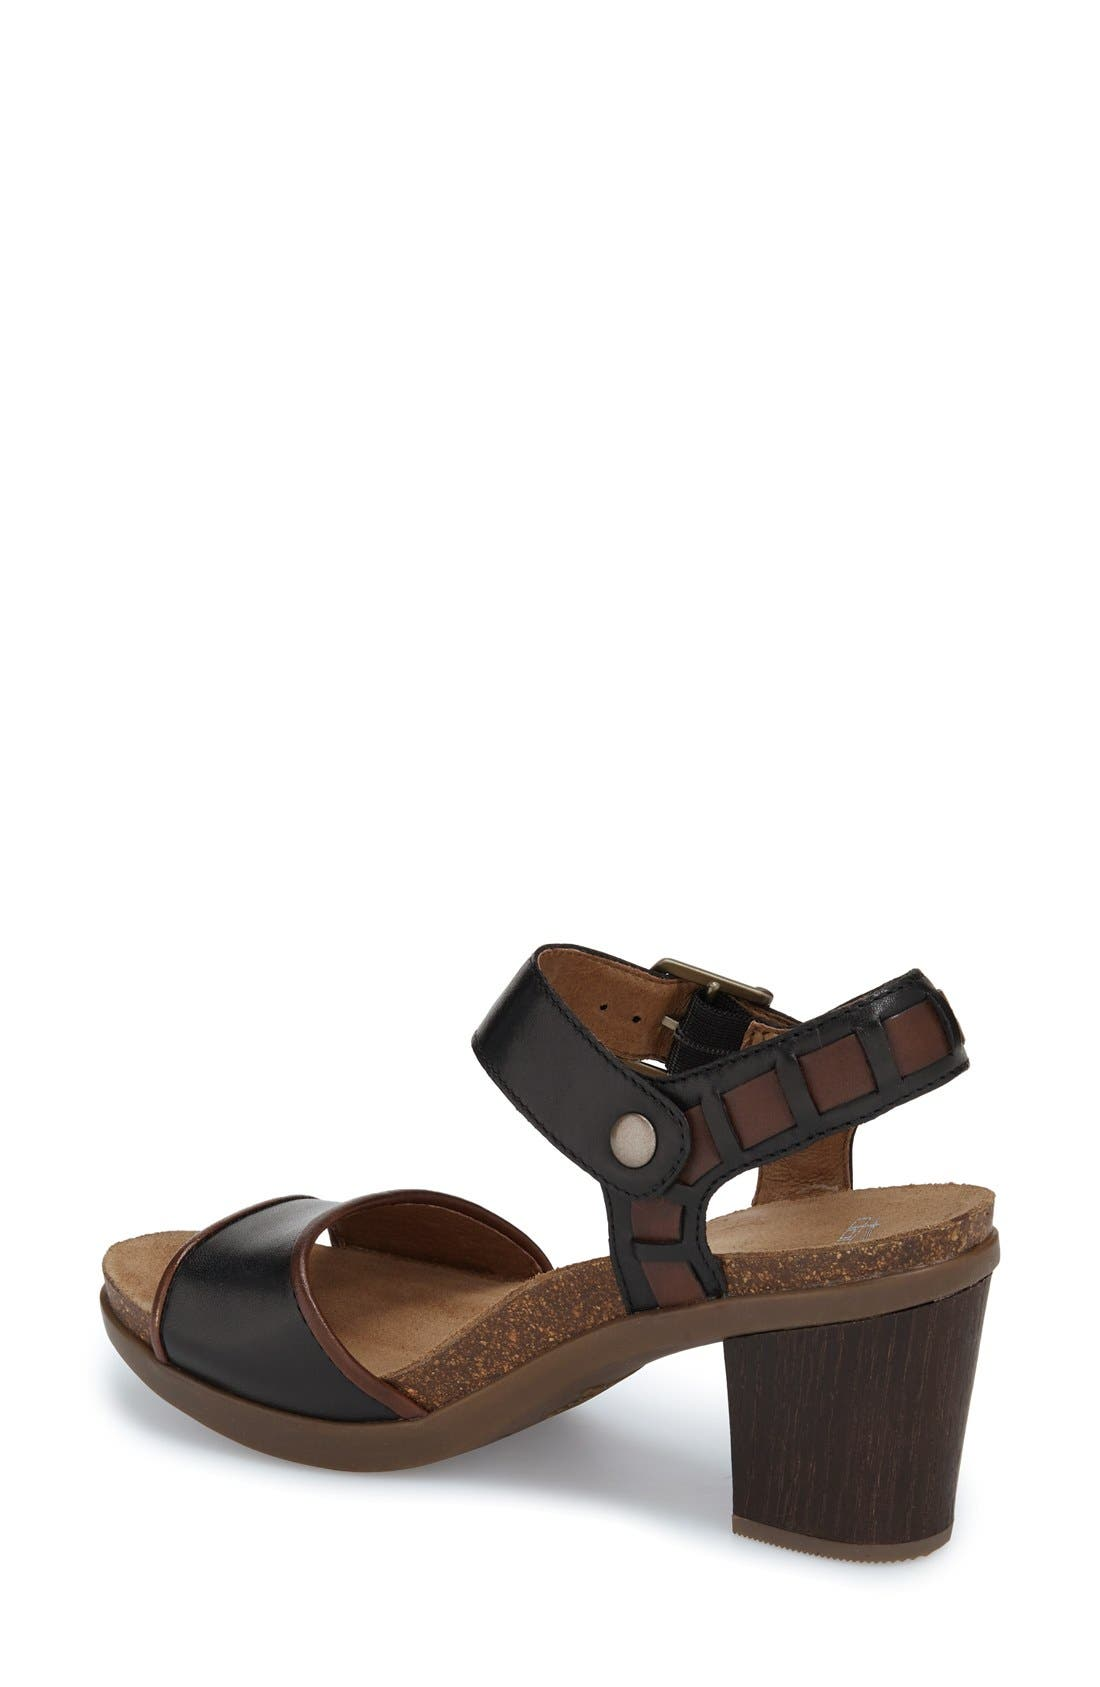 'Debby' Platform Sandal,                             Alternate thumbnail 5, color,